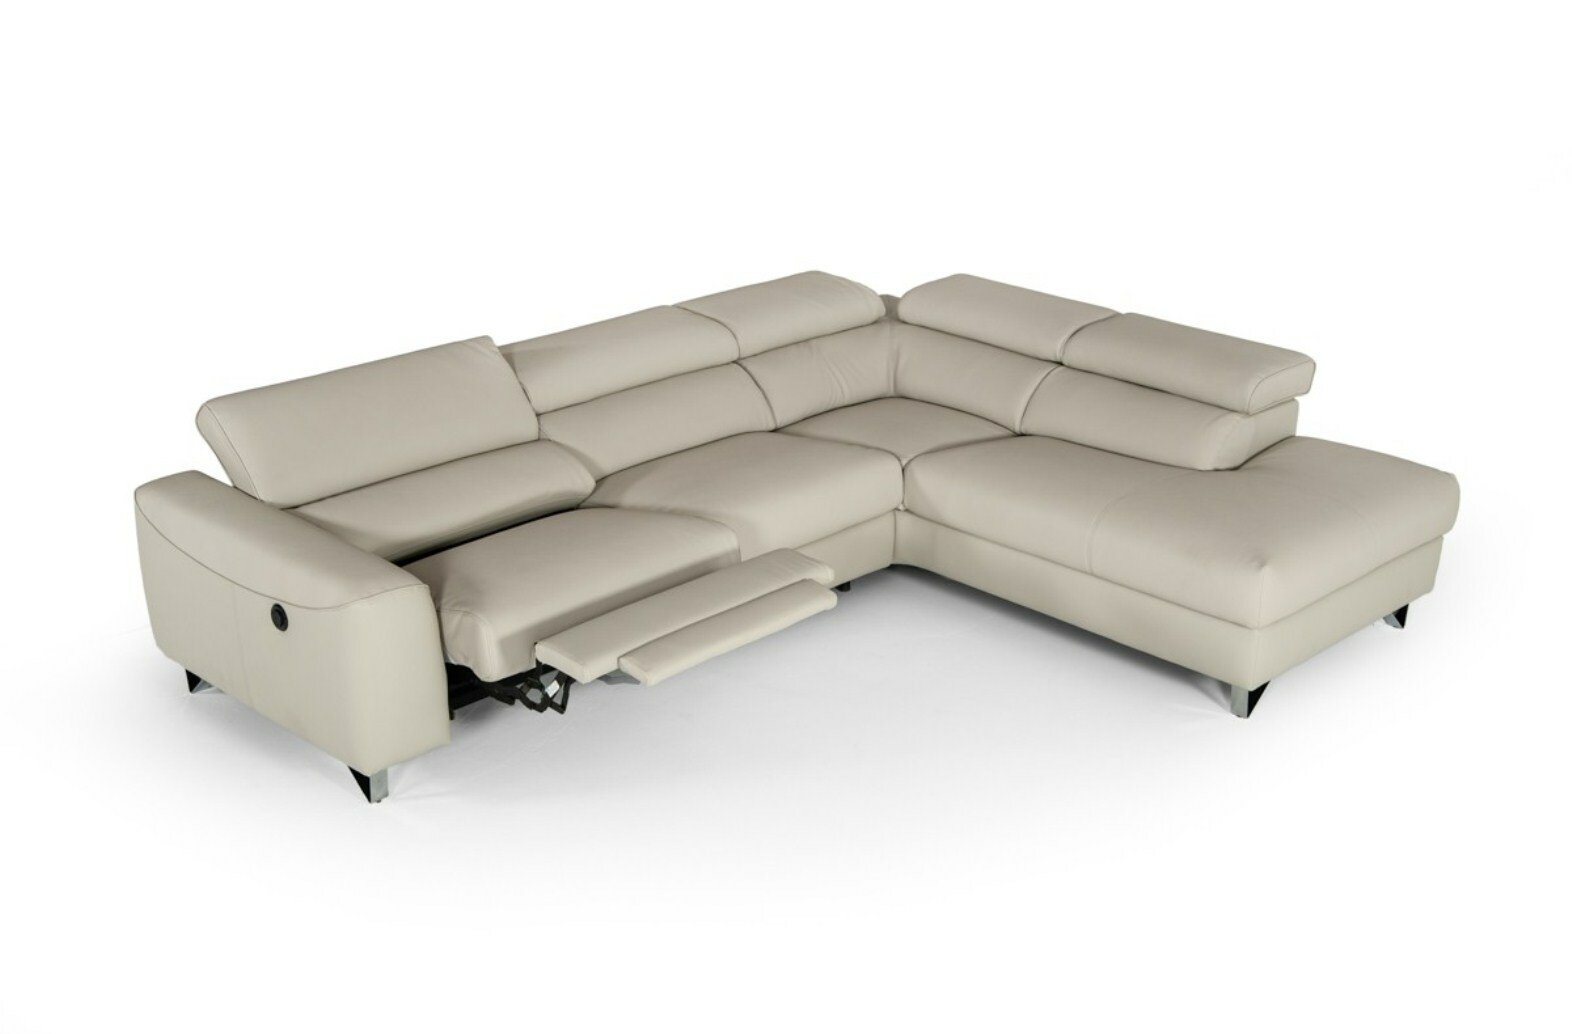 Charmant Rondo Right Hand Facing Modern Reclining Sectional